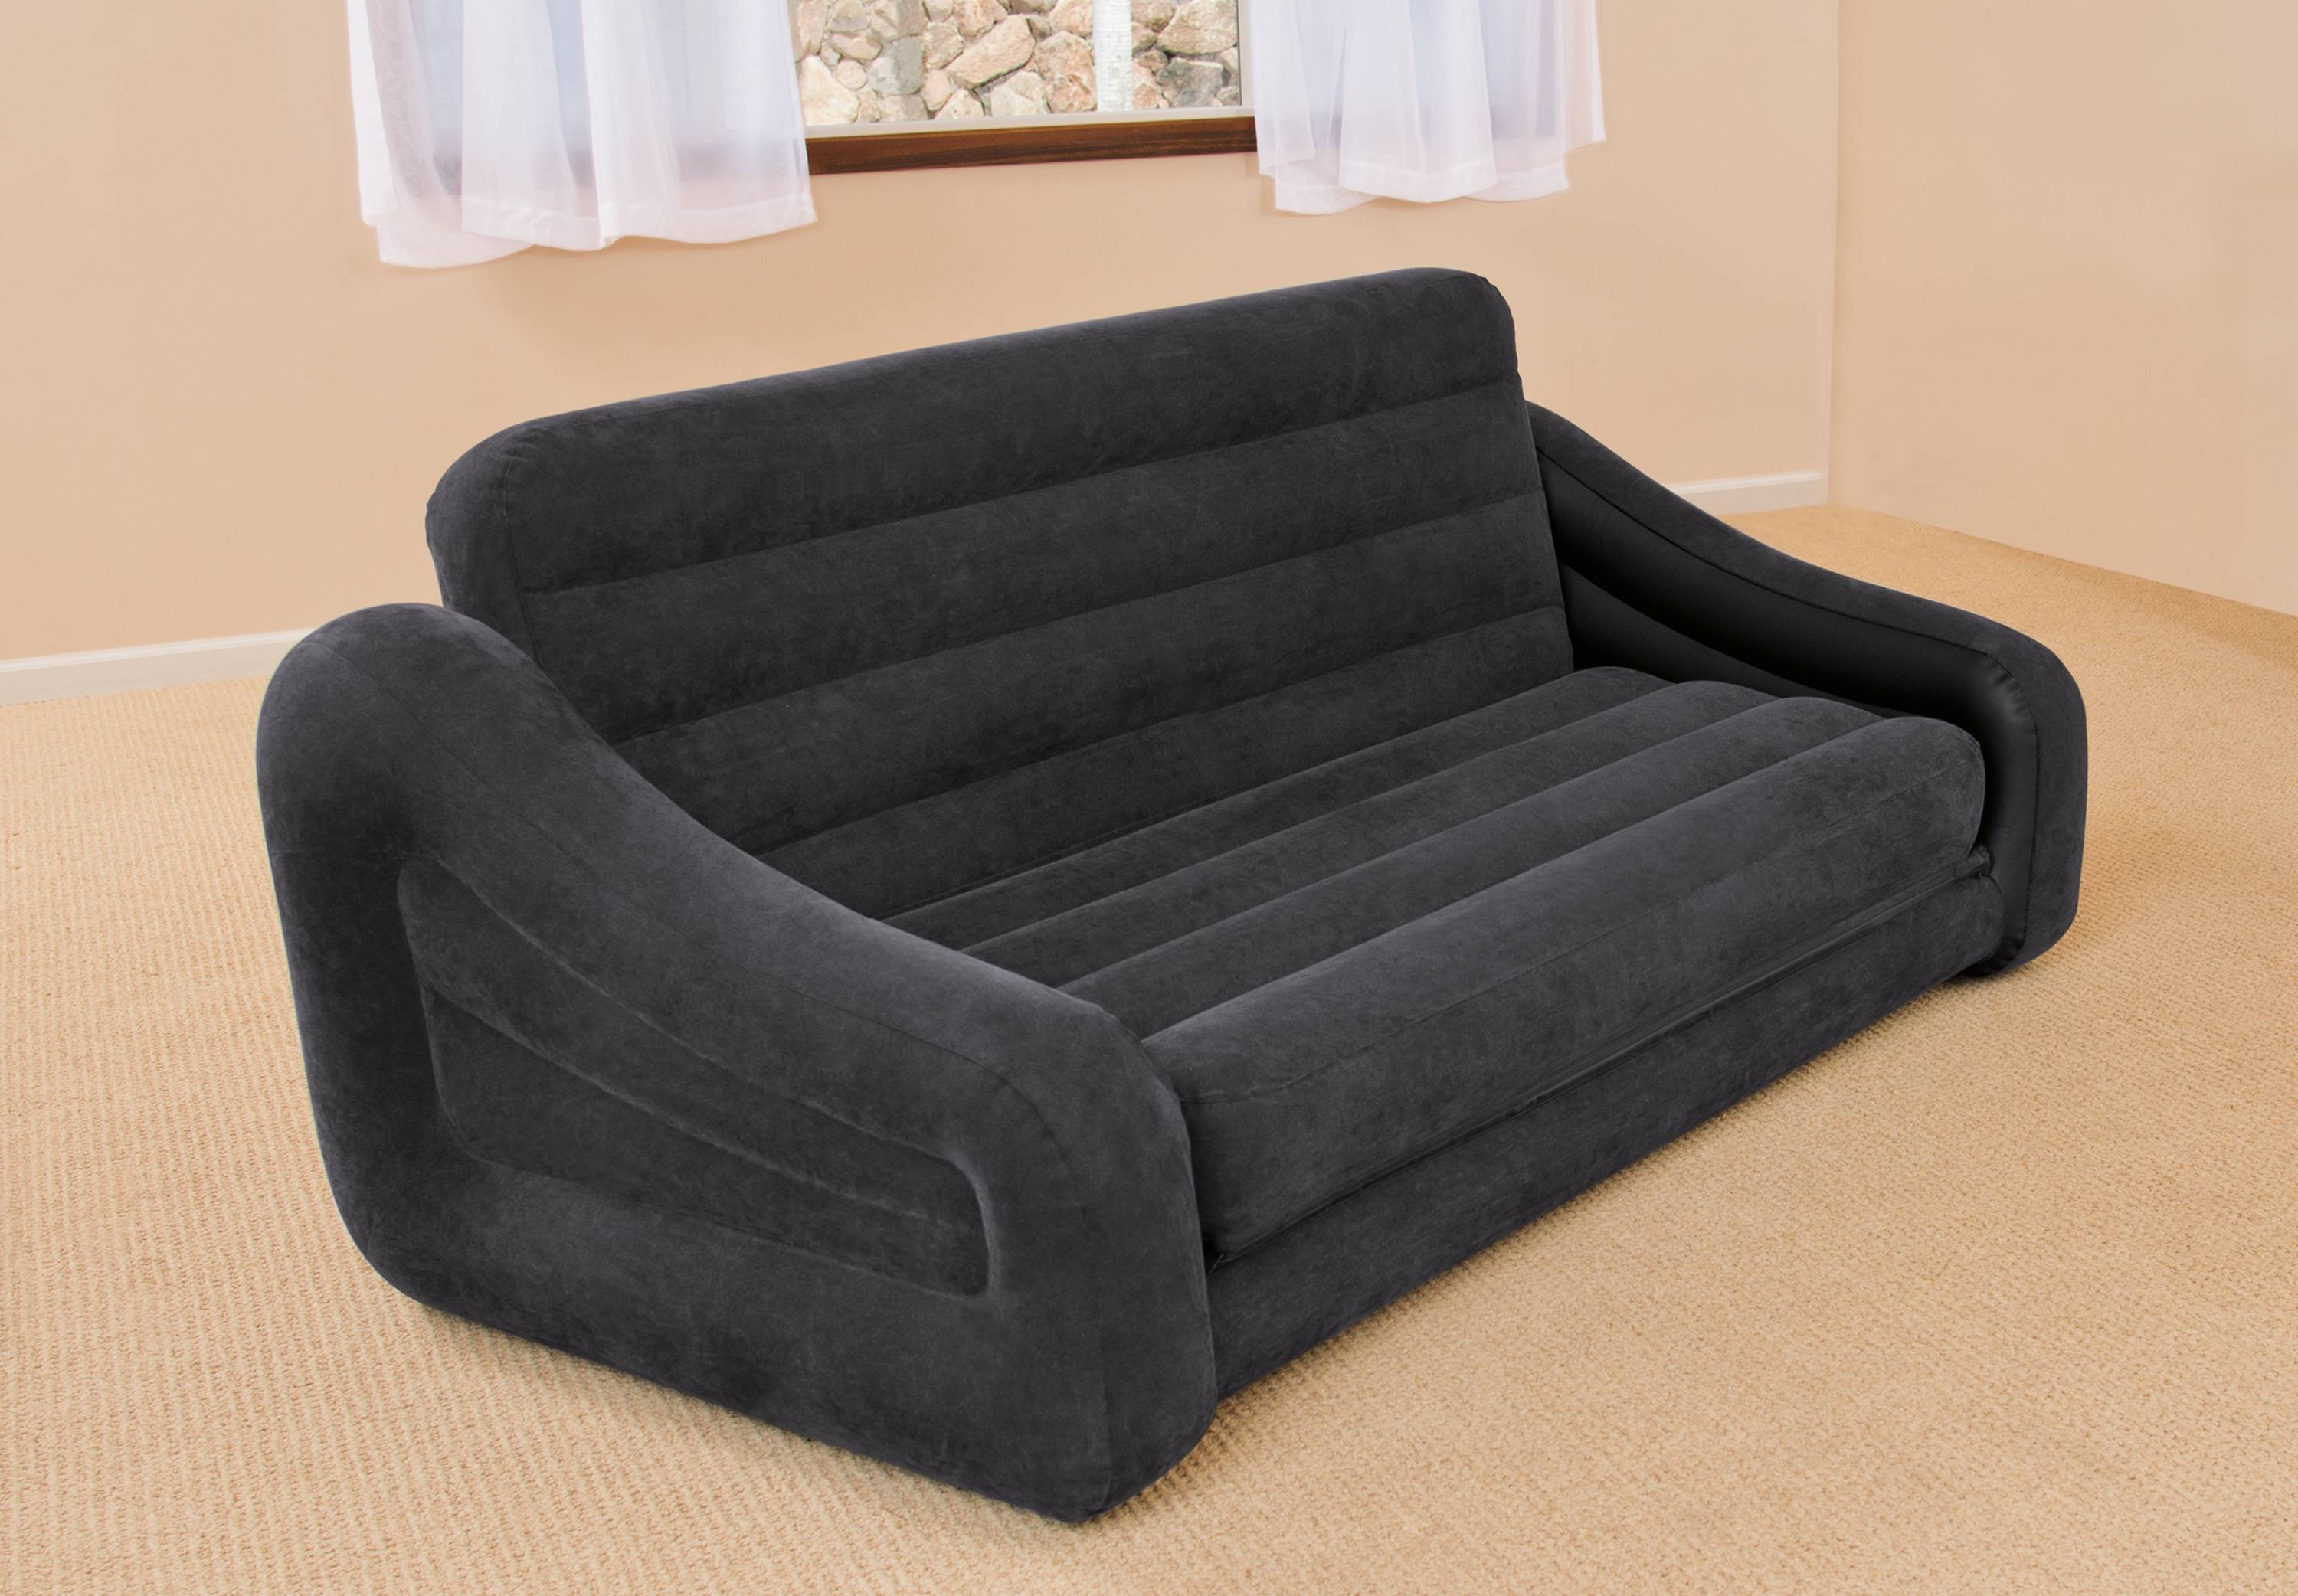 Sofas Center : Carlyle Sofa Beds Reviews Nyc Furniture inside Carlyle Sofa Beds (Image 7 of 15)